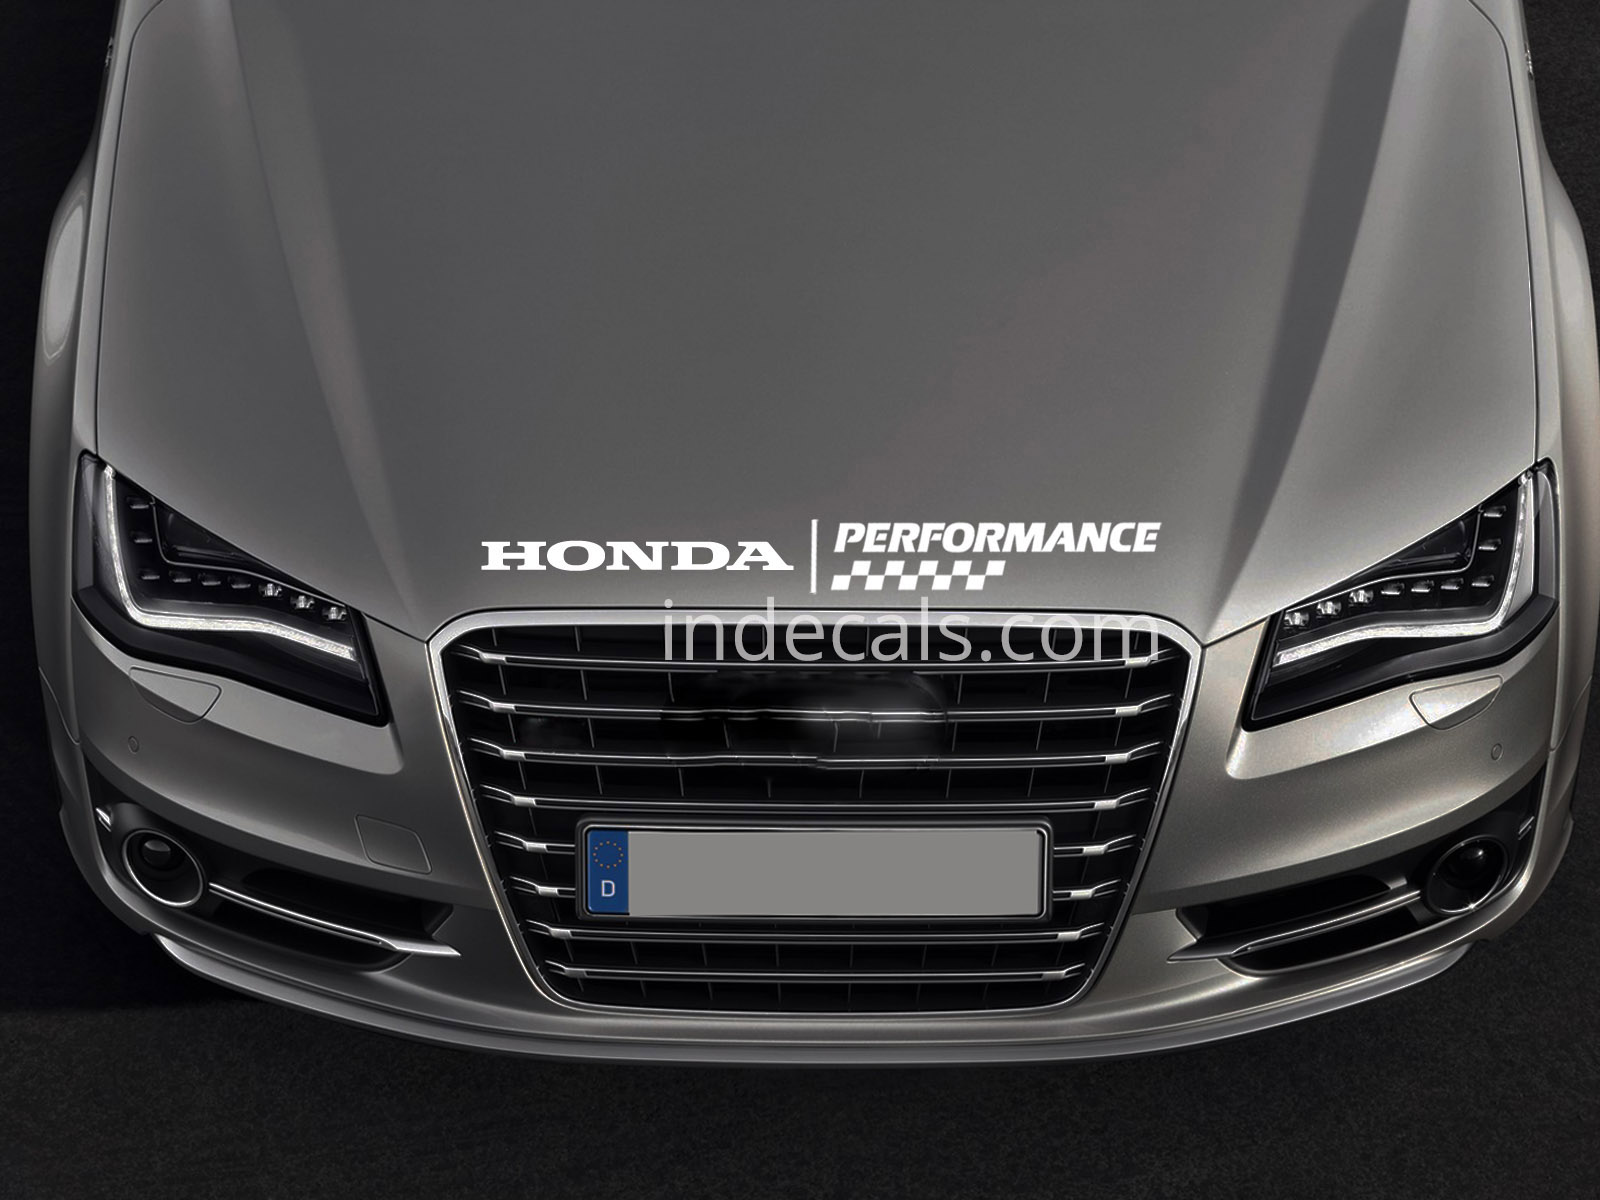 1 x Honda Peformance Sticker for Bonnet - White